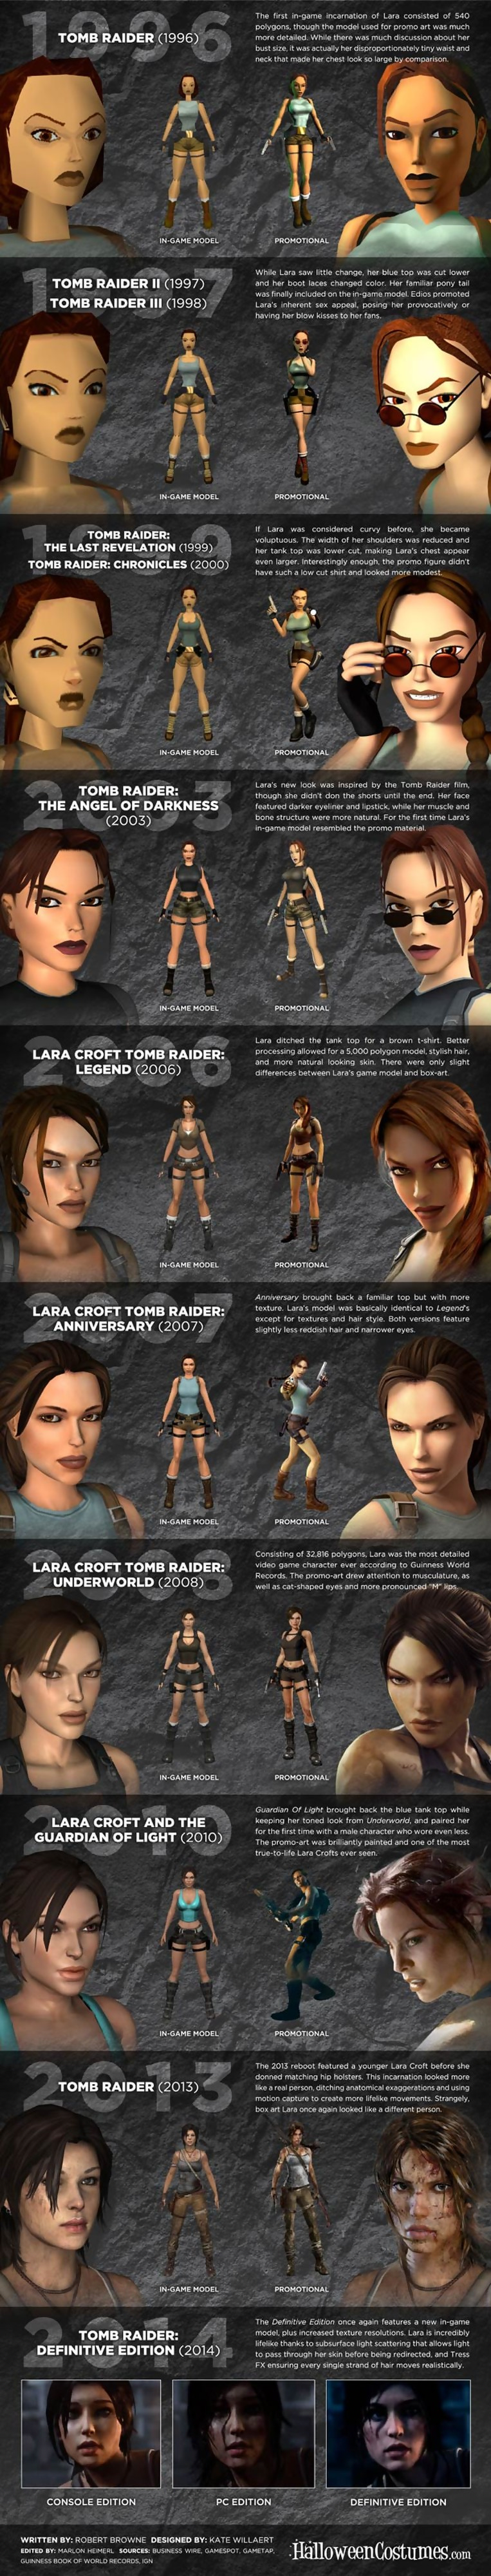 tomb-raider-definitive-52dfeba81791e